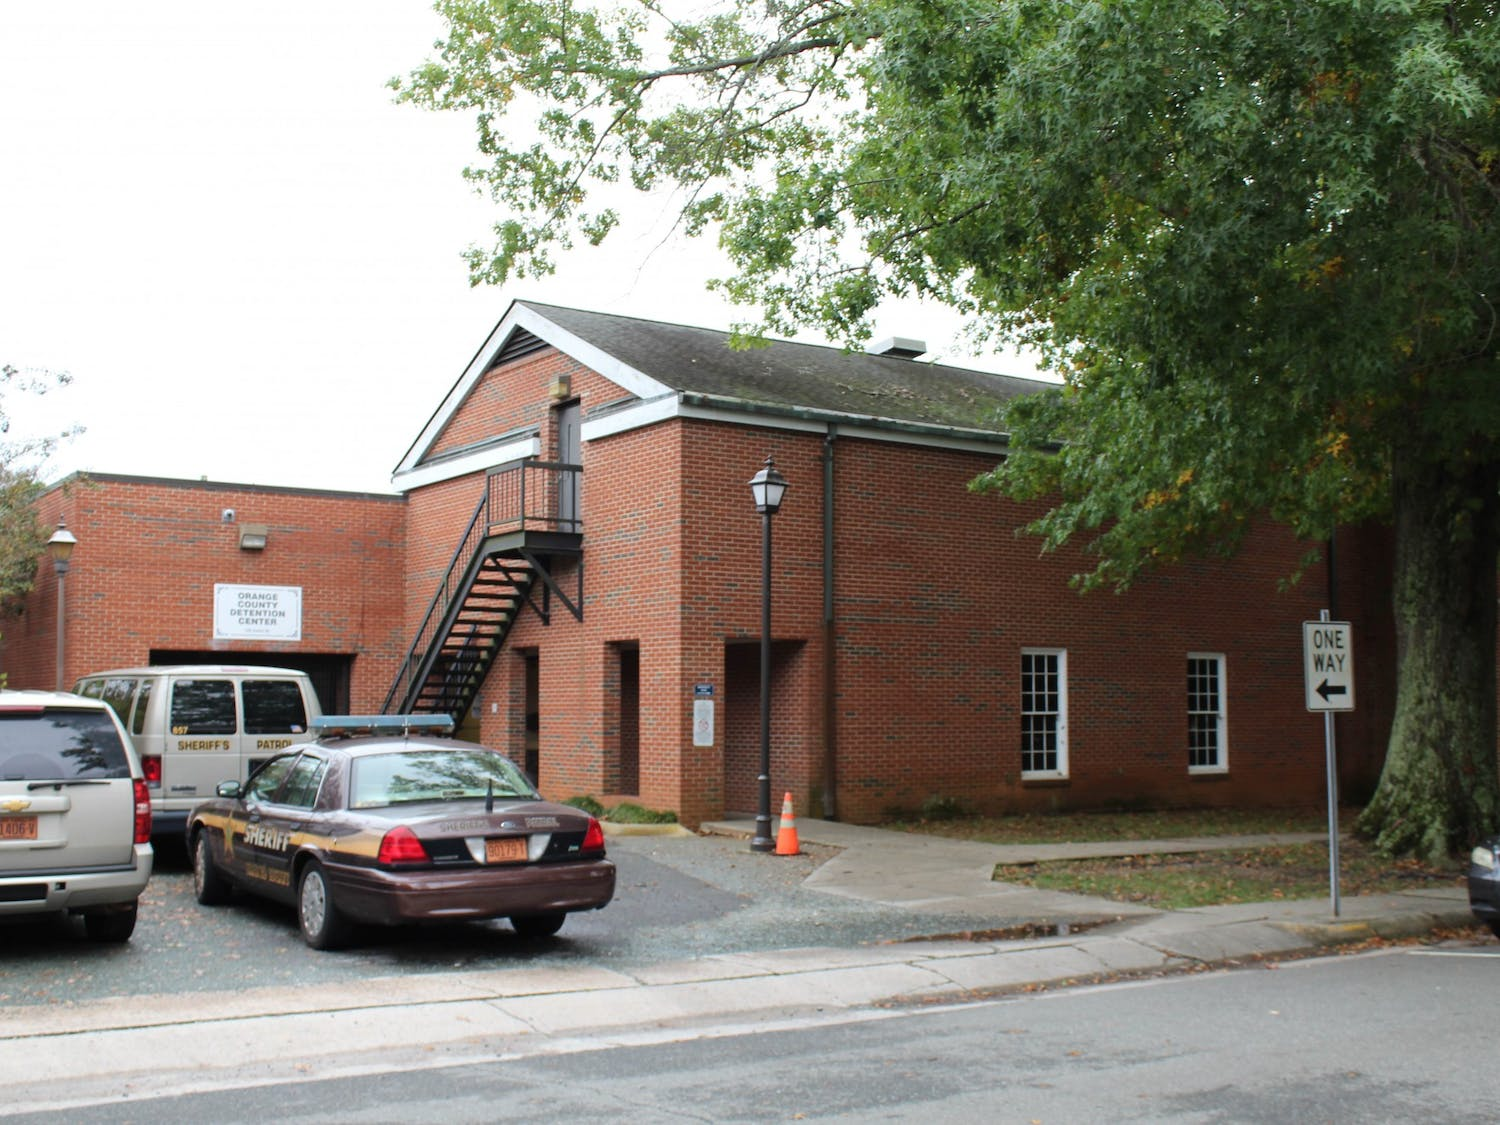 The Orange County Detention Center in Hillsborough, NC, pictured on Oct. 10.